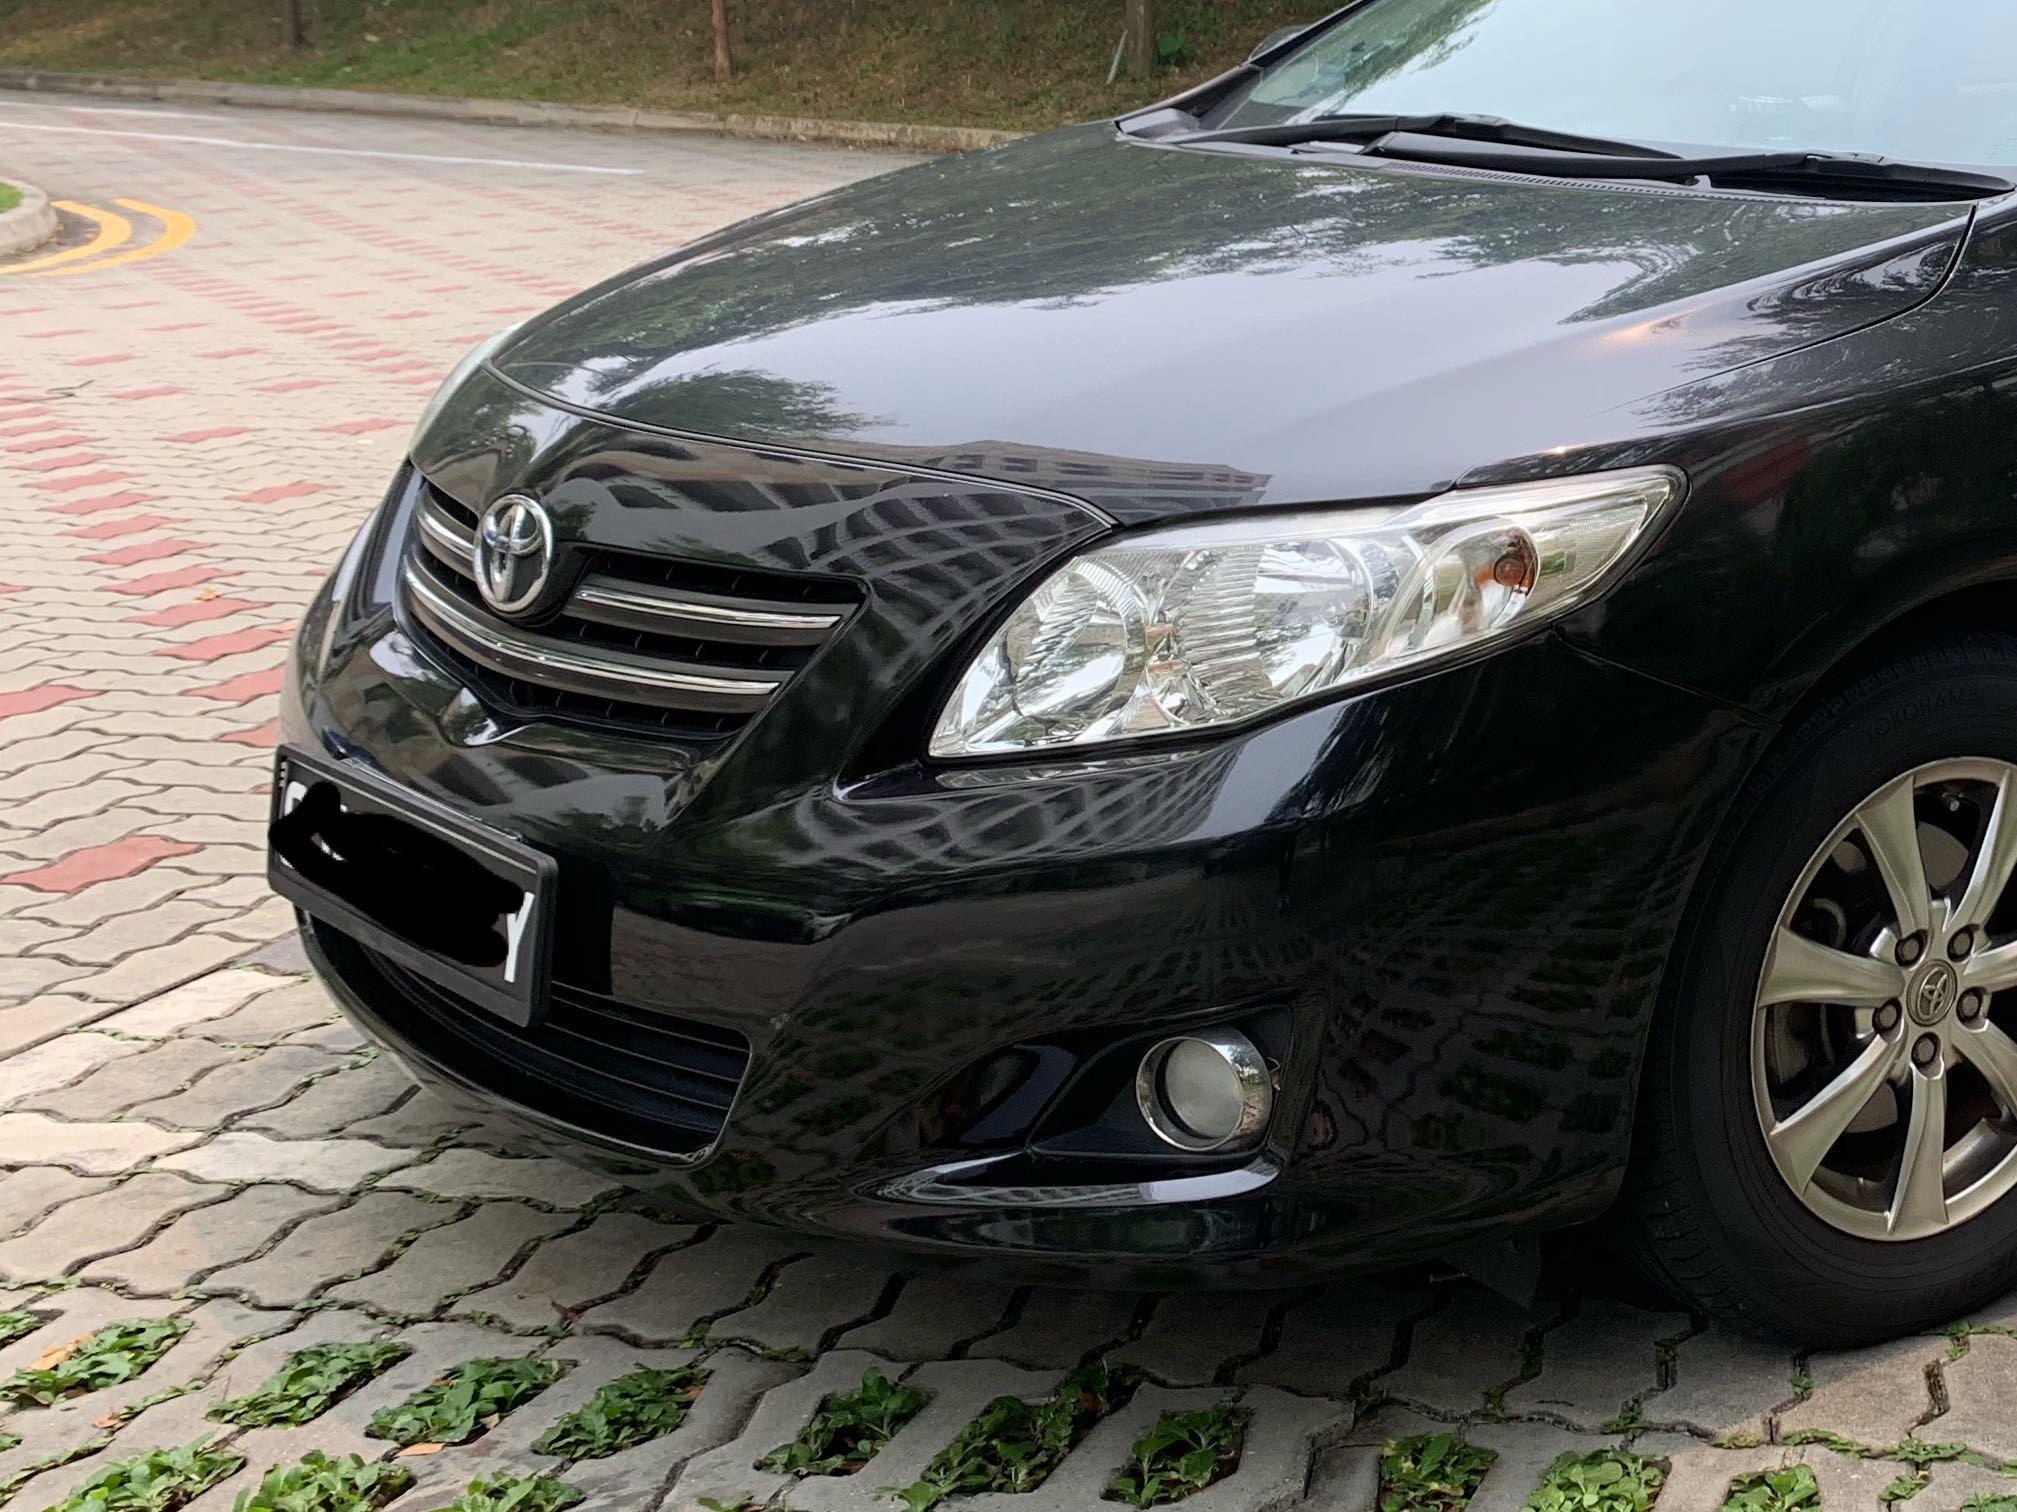 🚘TOYOTA COROLLA ALTIS LX👌🏽 A RIDE FOR THE FAM👨👩👦👦